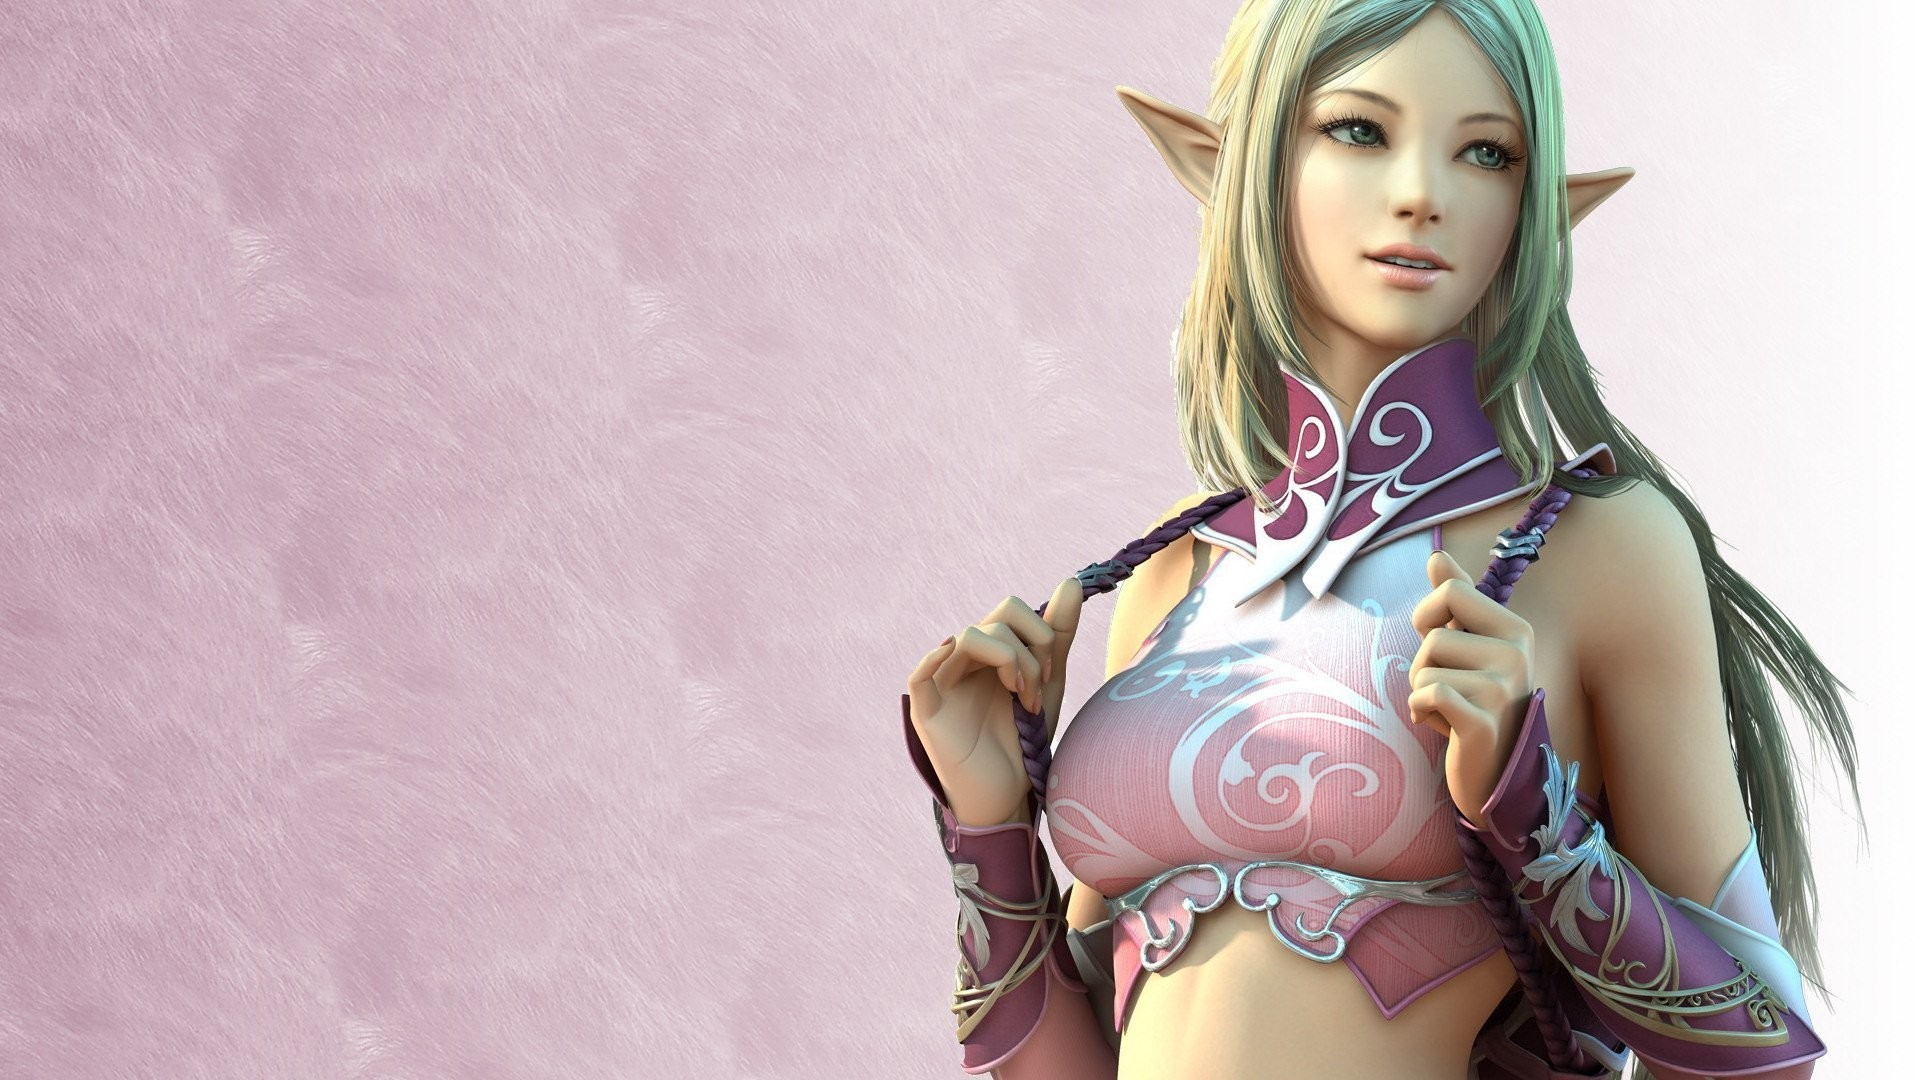 lineage elf girl game wallpapers girl elf games line